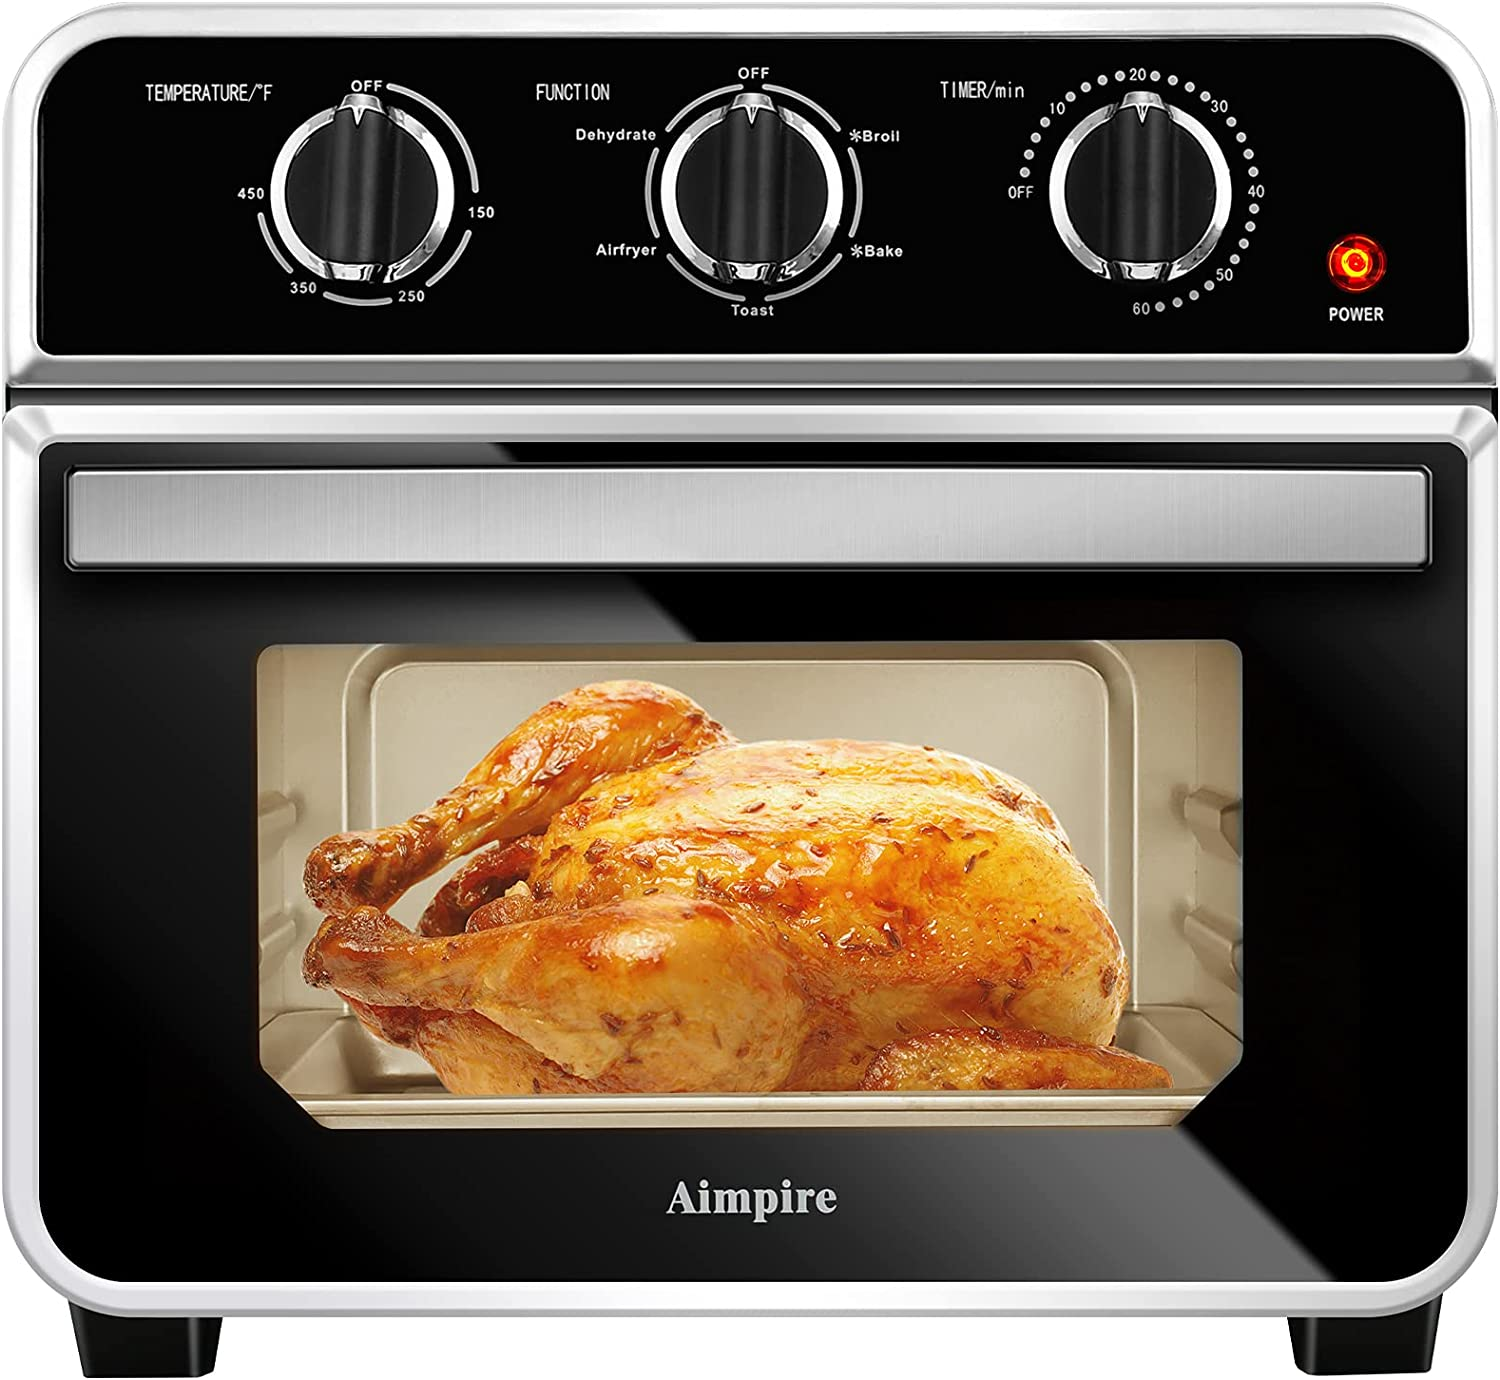 Aimpire Air Fryer Toaster Oven,15 quarts with Air Fry,Dehydrator, Bake, Broil and Toast Oil-Less Air Fryer Oven